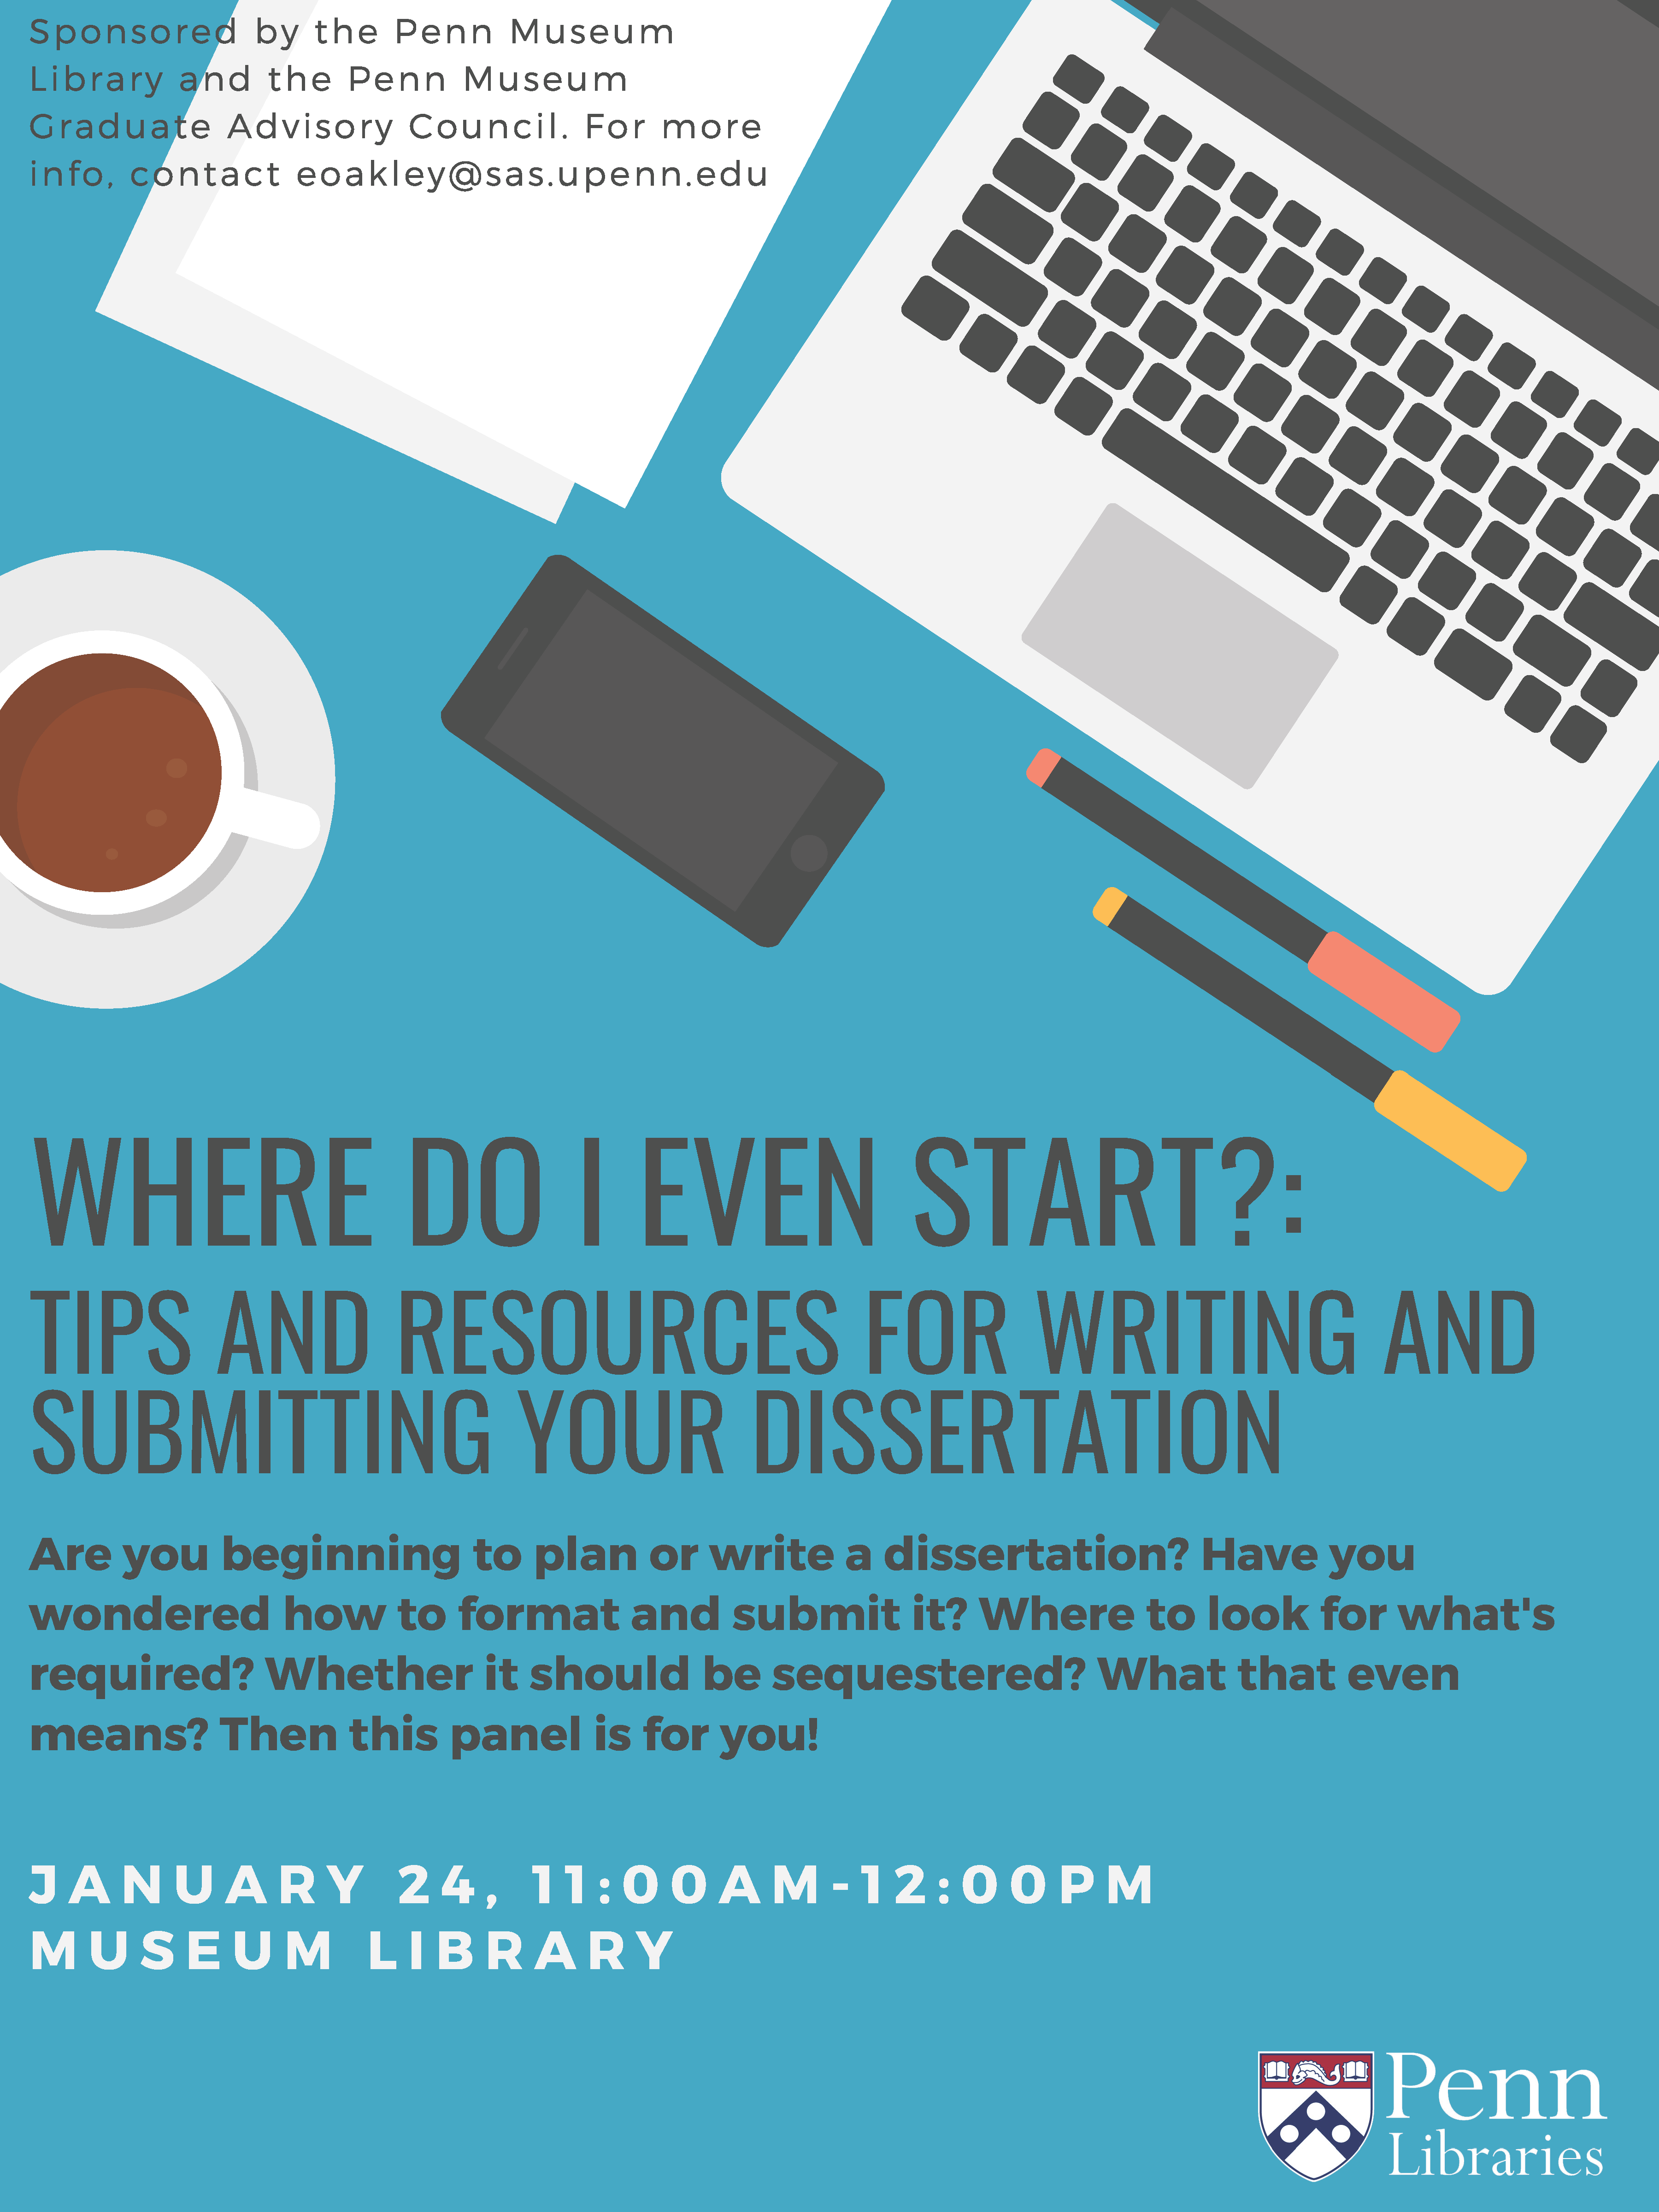 Where Do I Even Start?: Tips and Resources for Writing and Submitting Your Dissertation